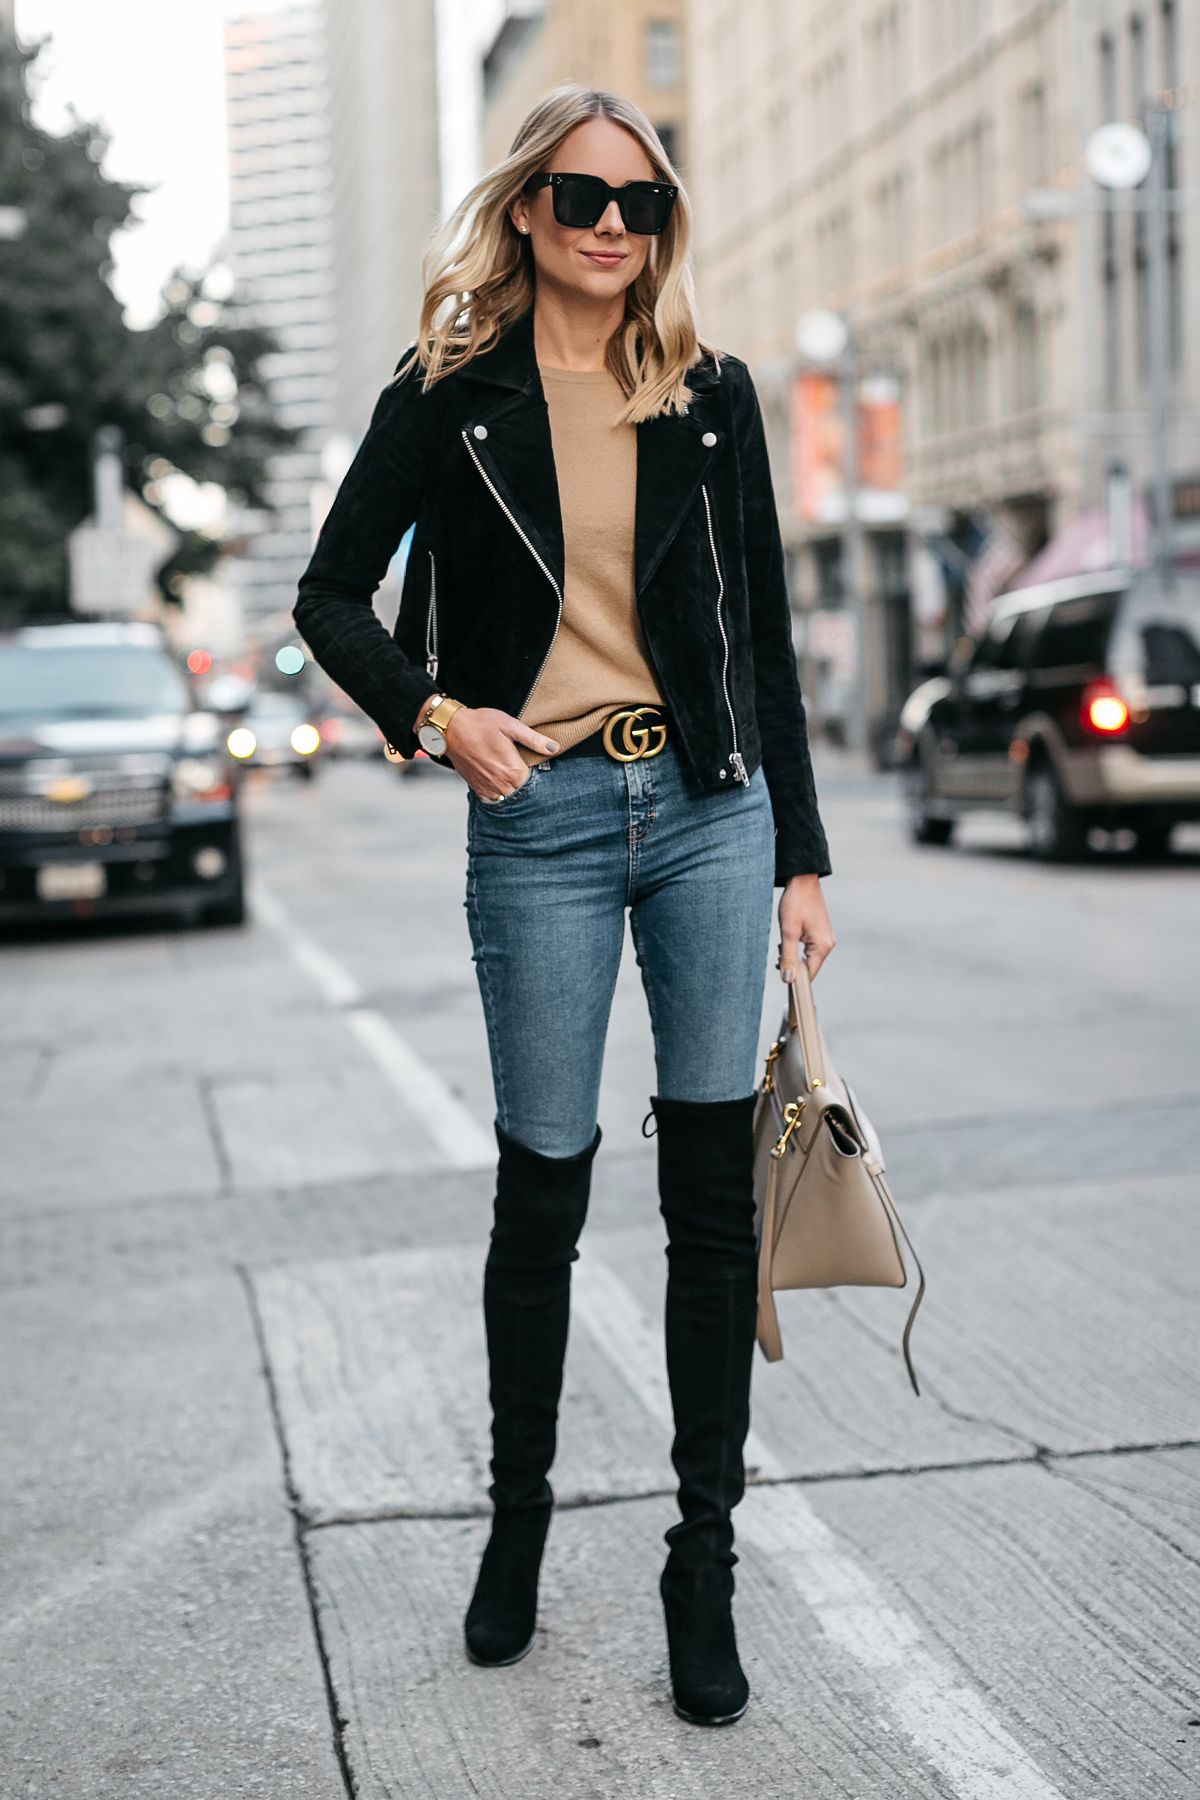 HOW TO WEAR OVER-THE-KNEE BOOTS | Fashion Jackson